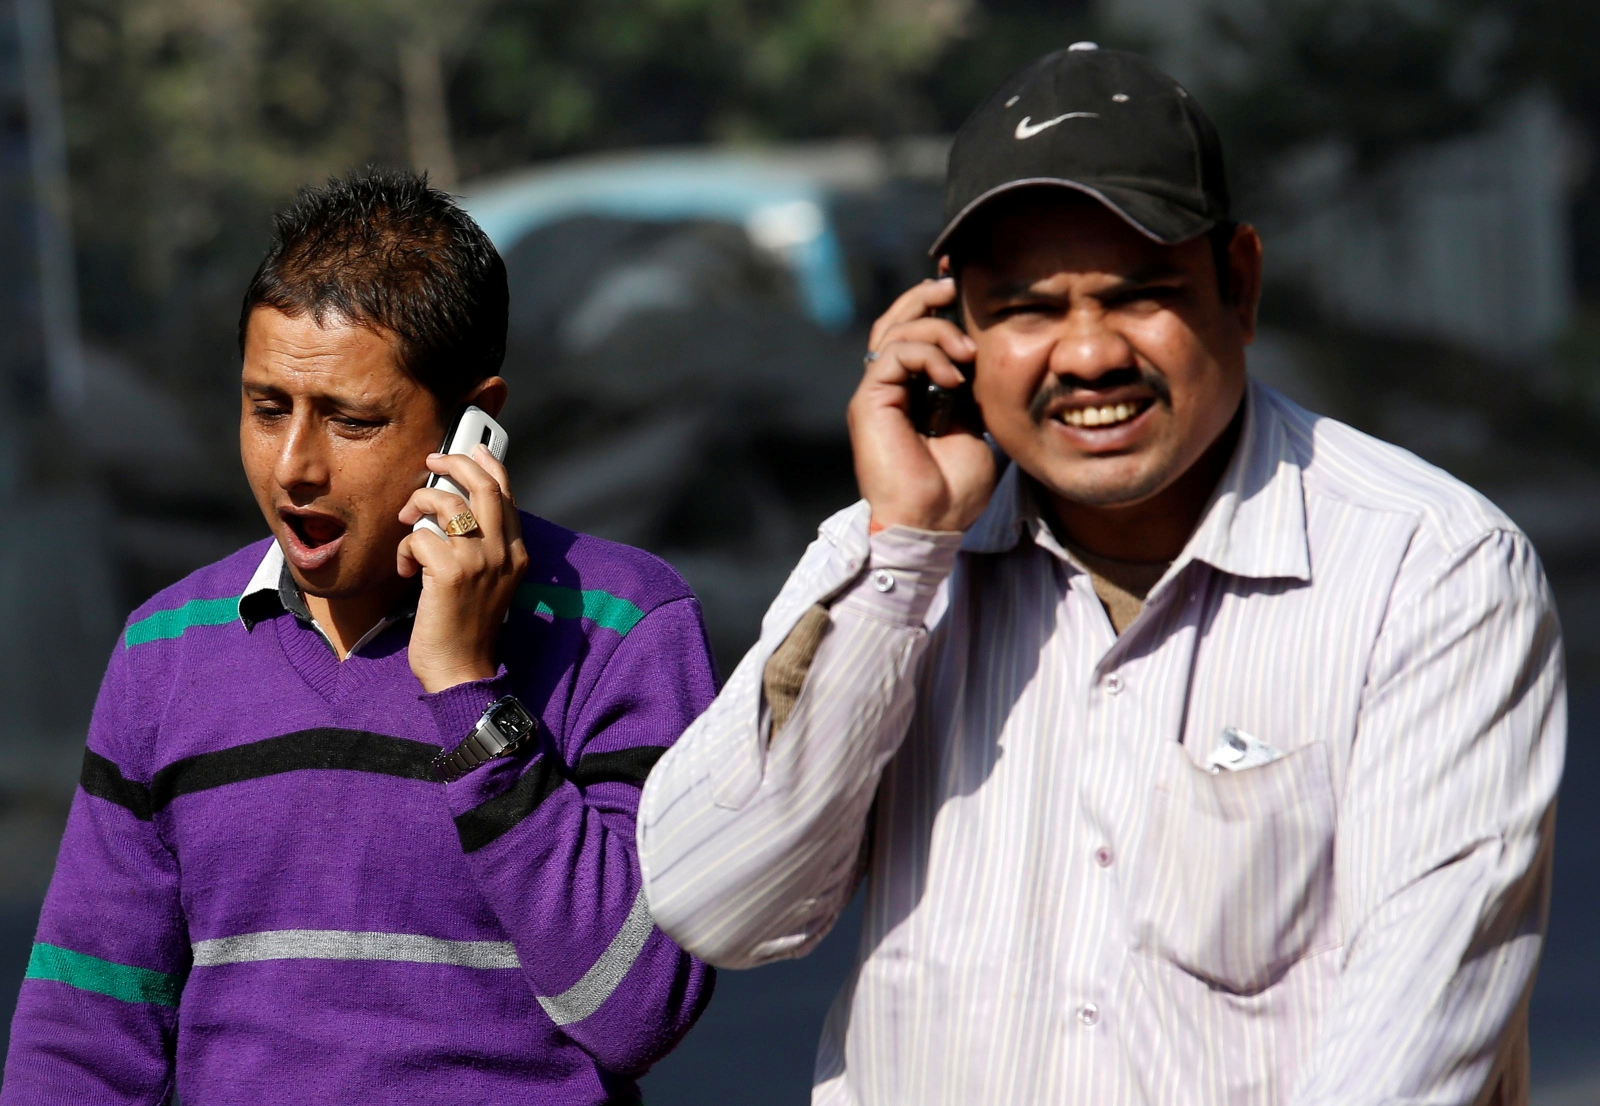 People on the phone in India